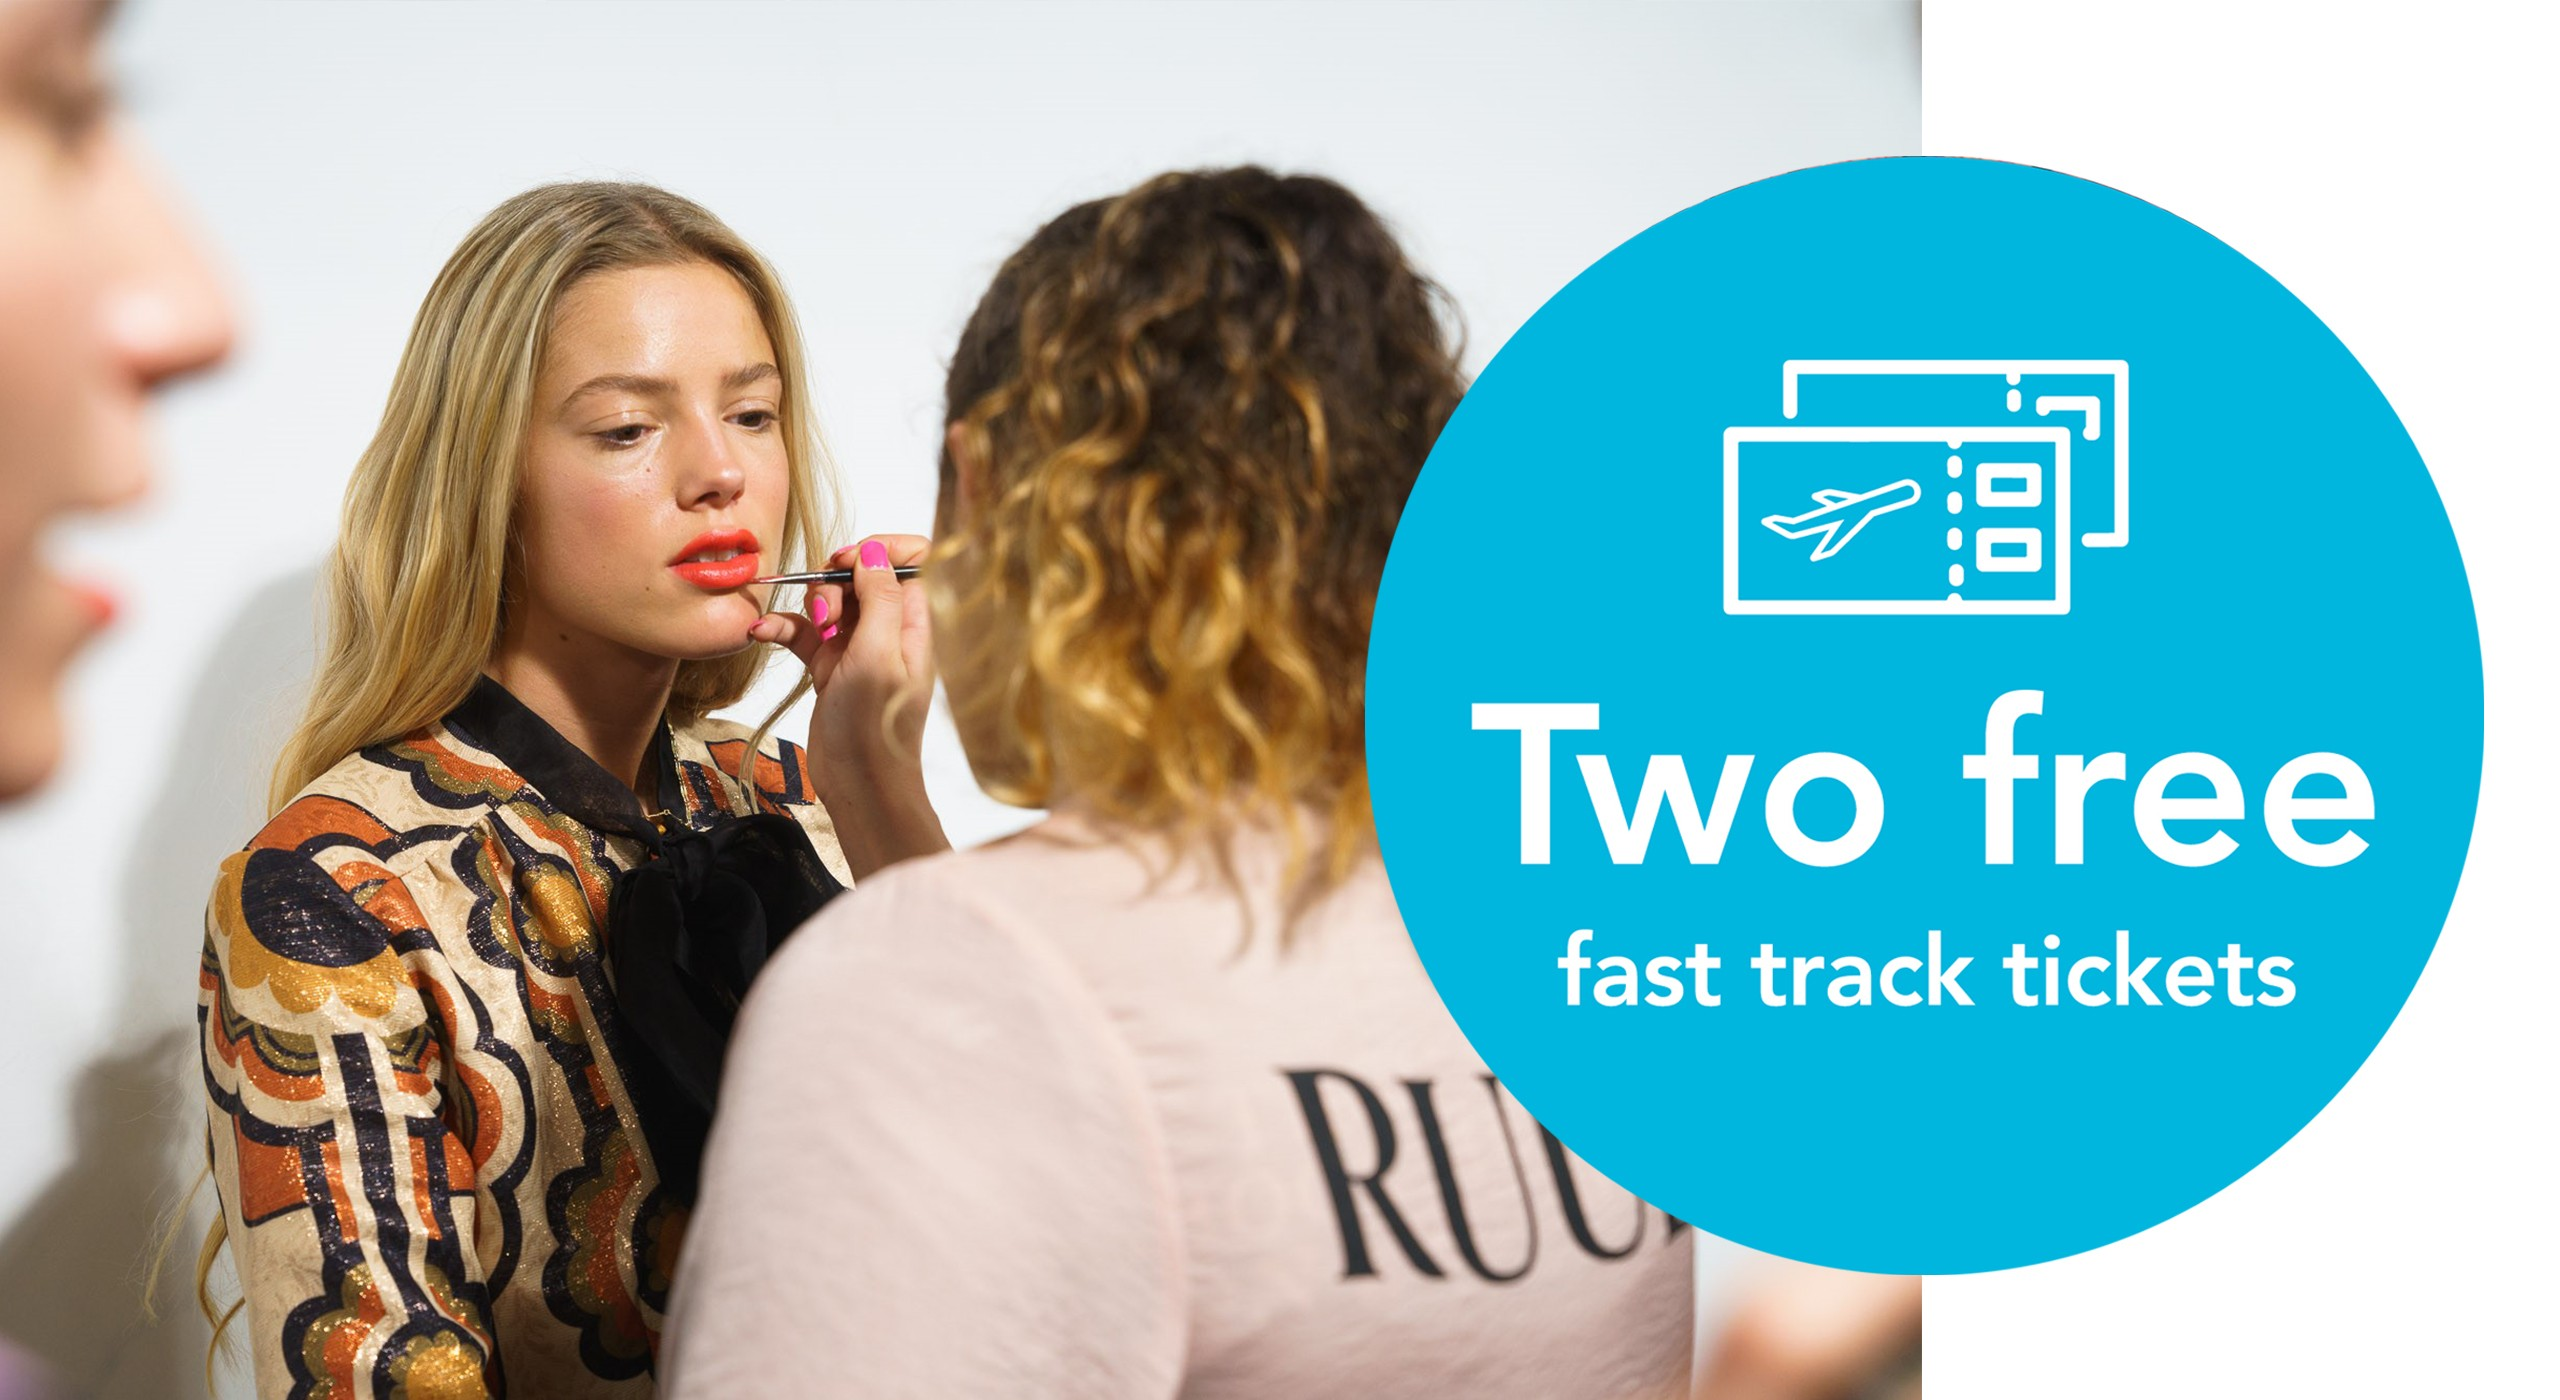 Ruuby fast track offer